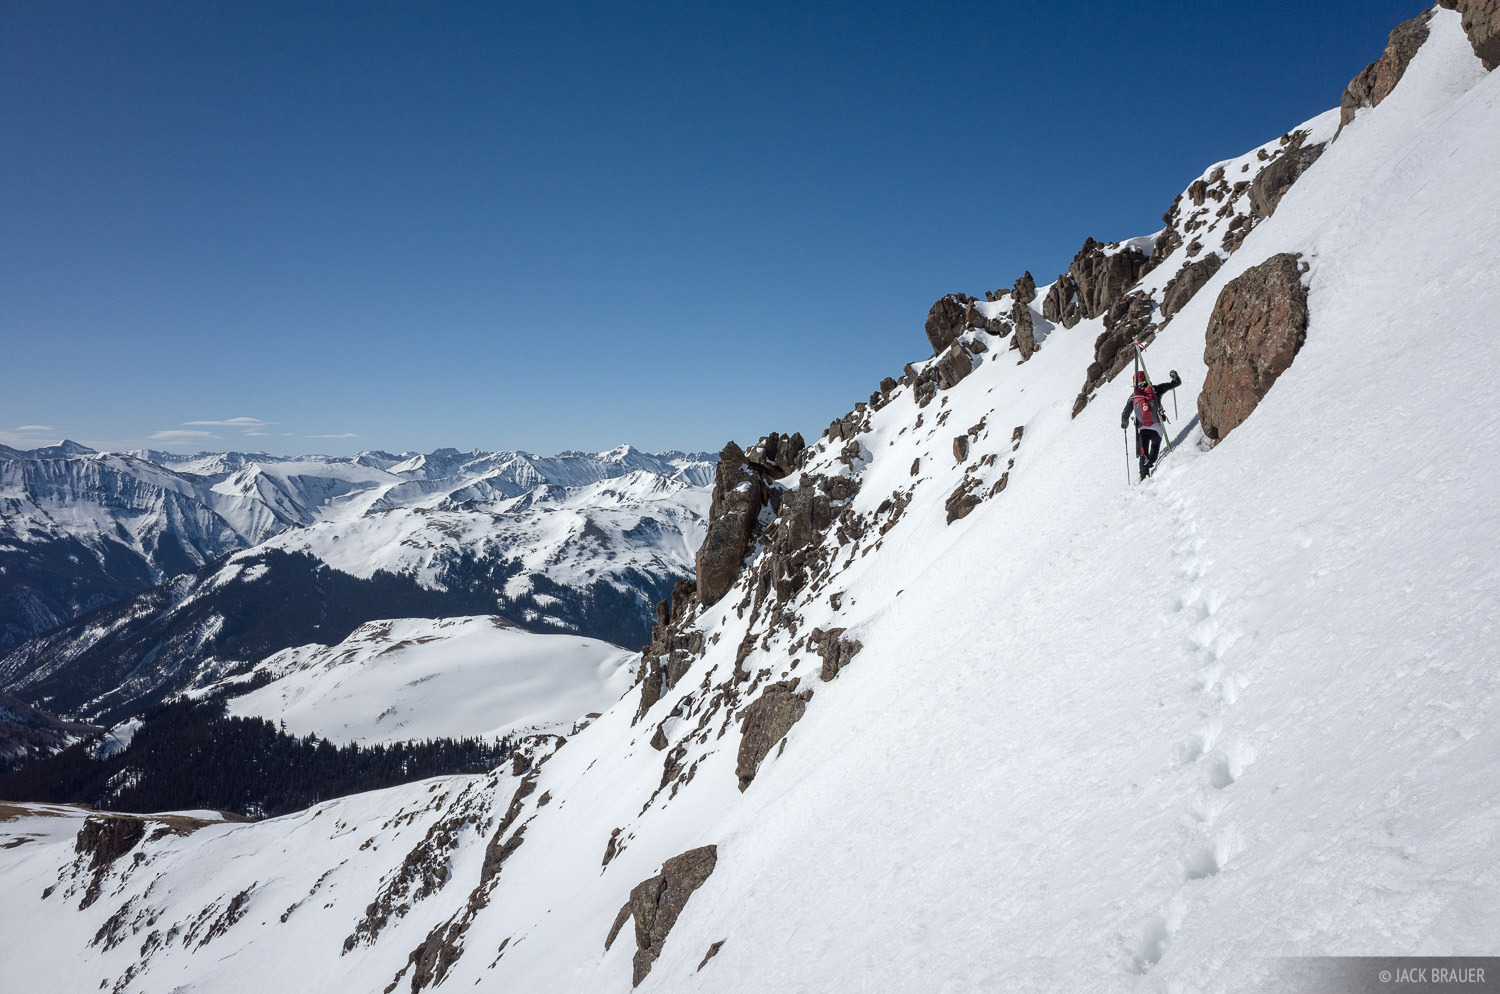 Some spicy hiking up the 50º steep east face of Wetterhorn Peak.